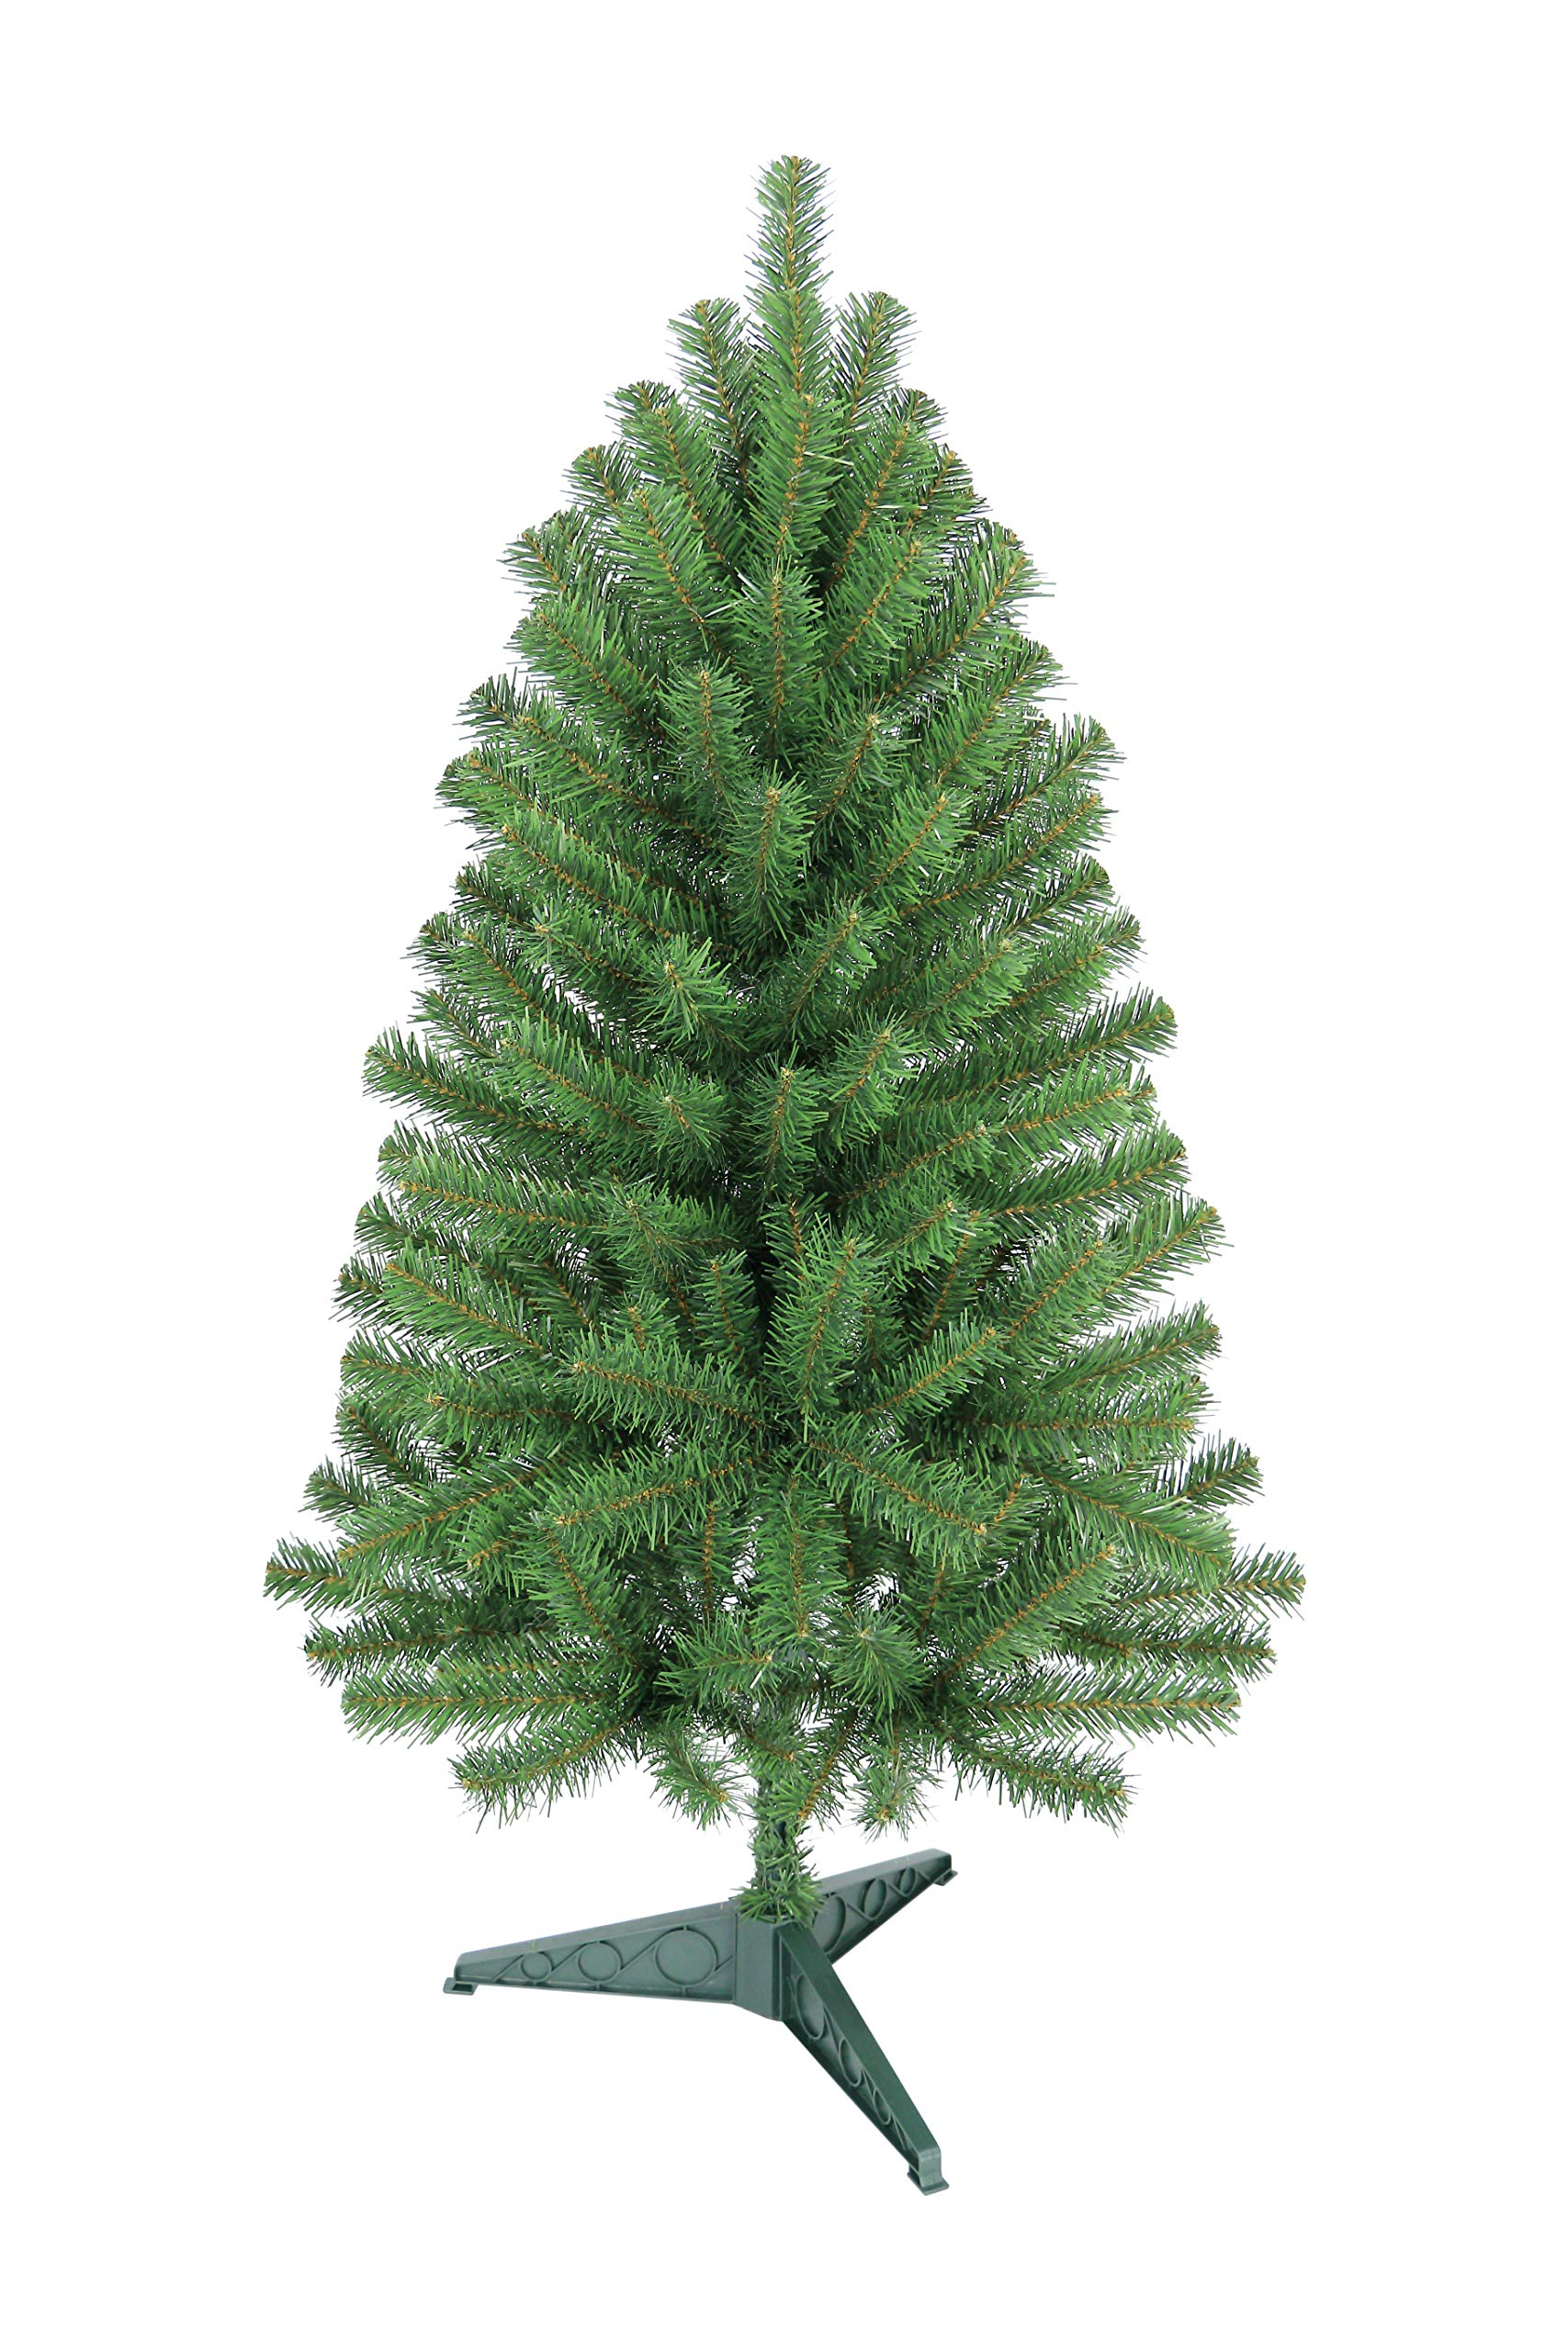 Oncor 4ft Eco-Friendly Christmas Pine Tree by Oncor